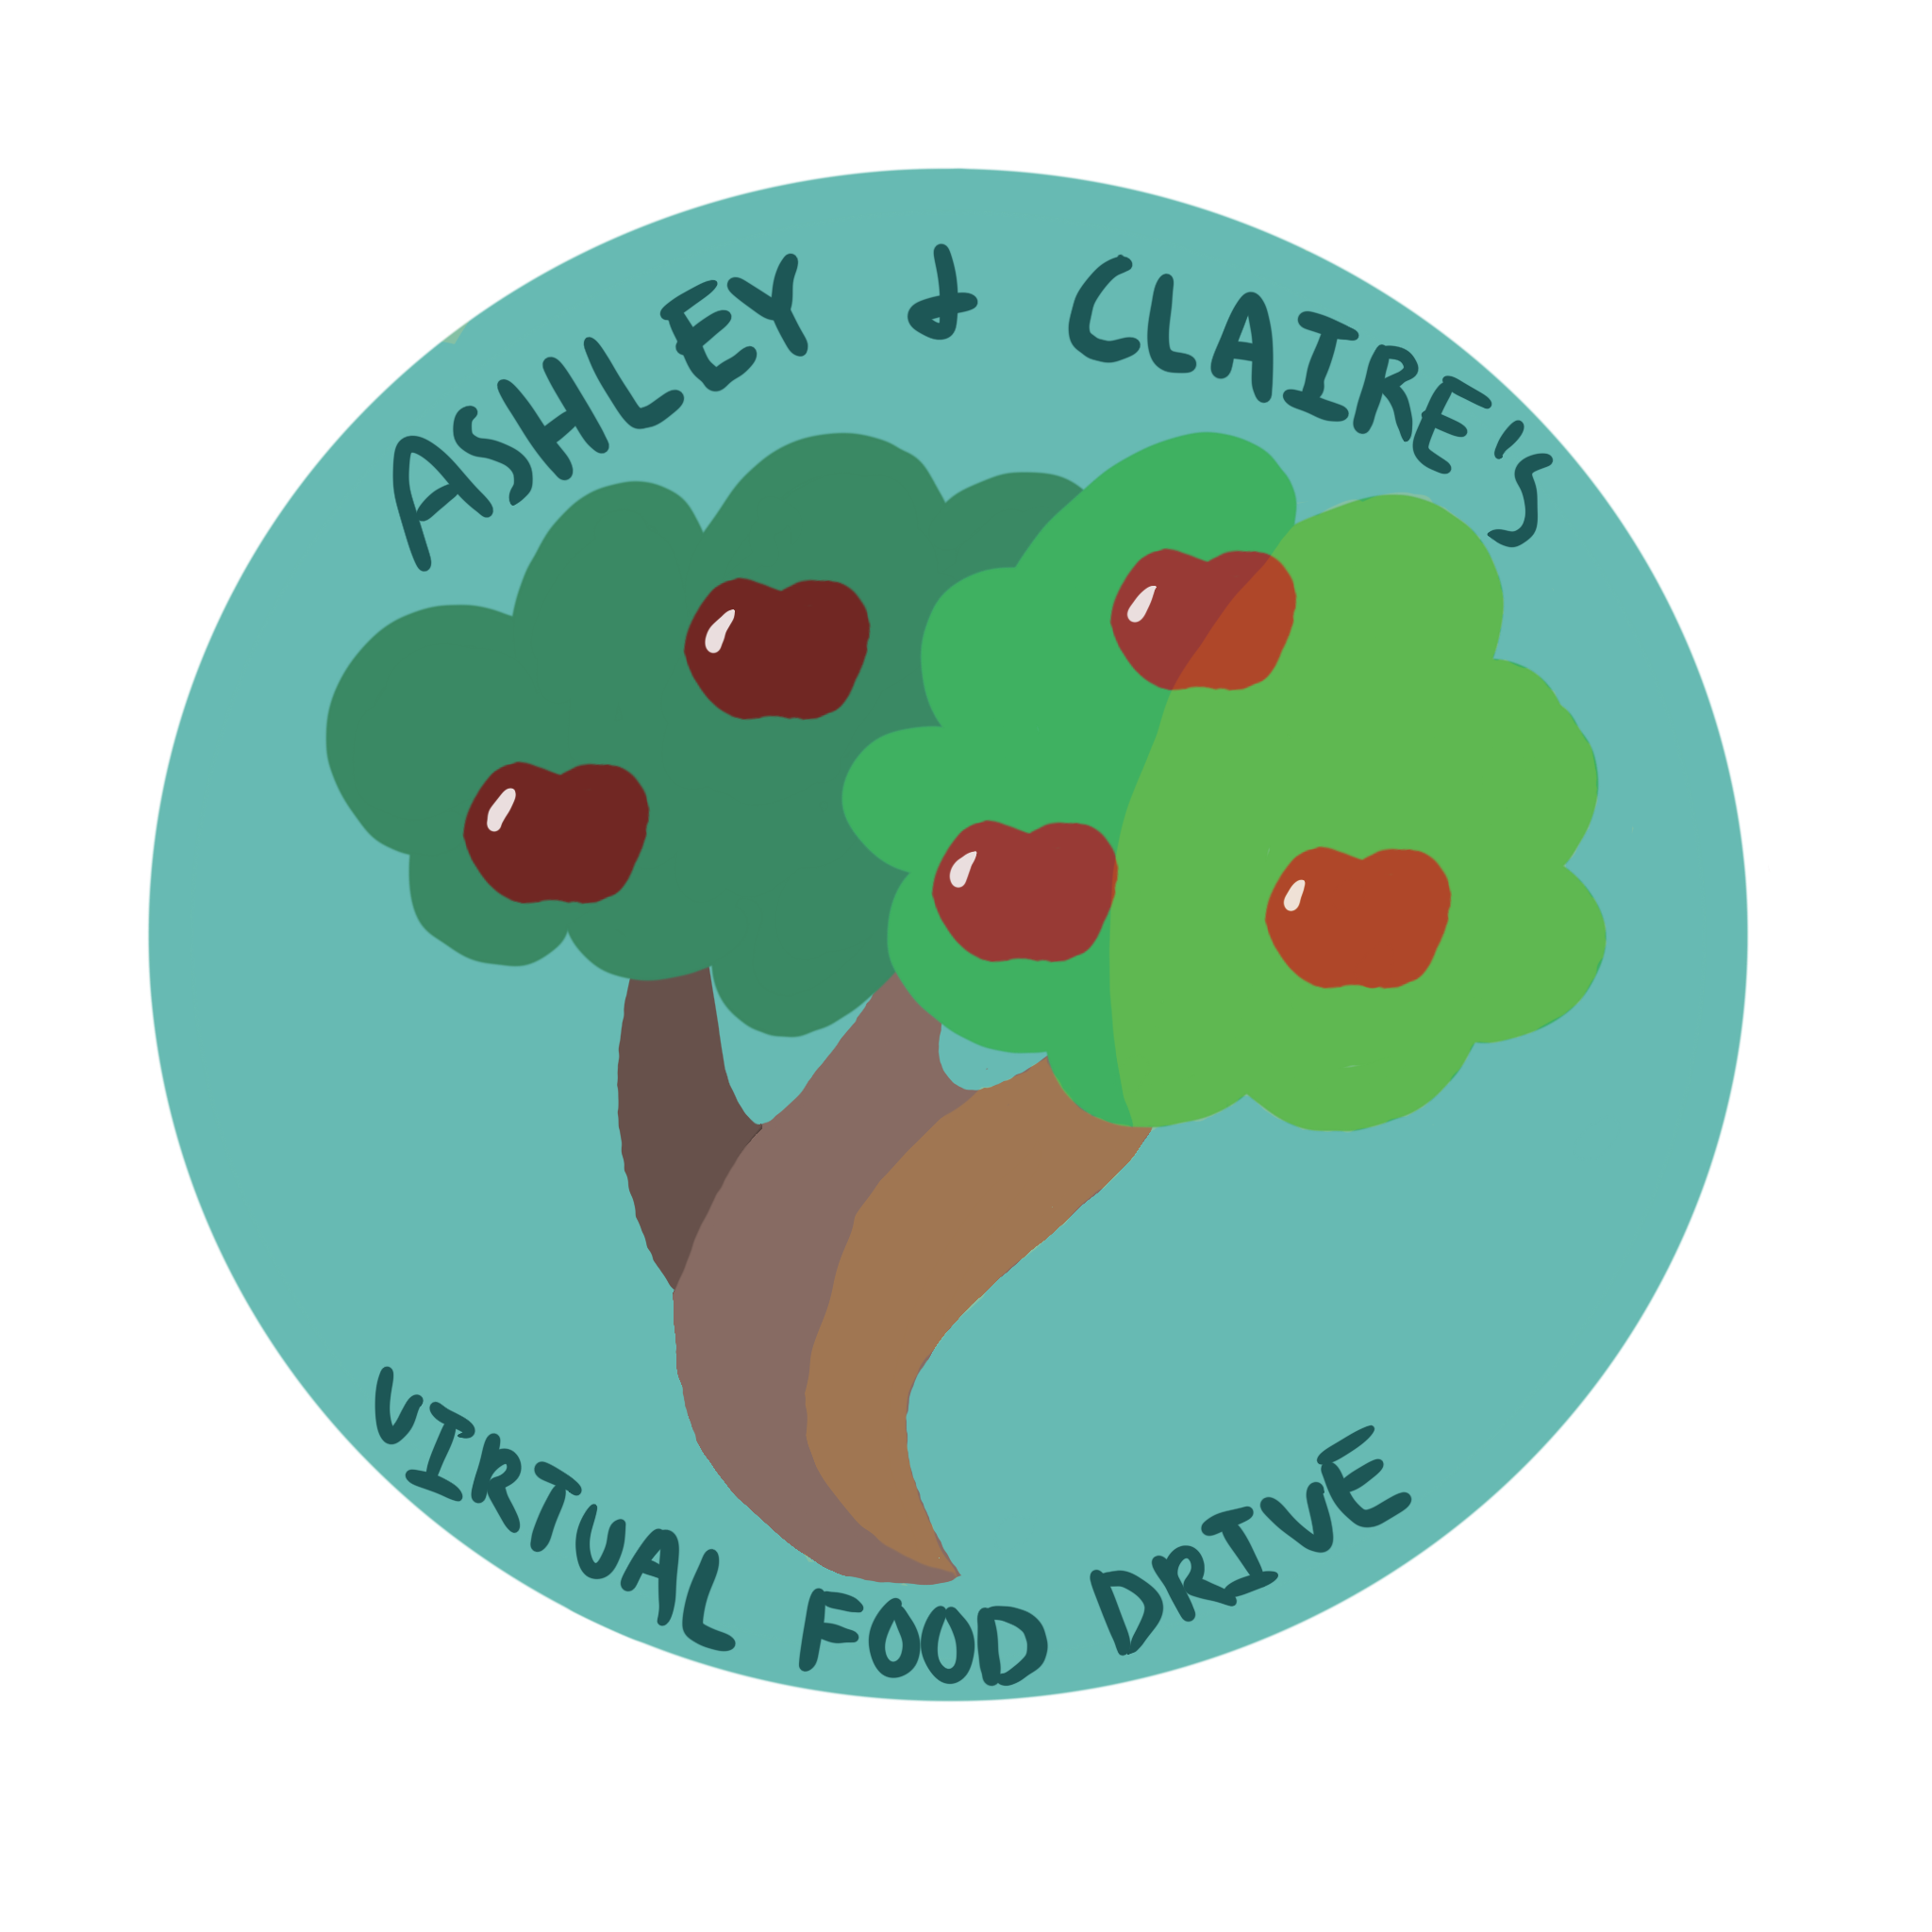 Ashley & Claire's Virtual Food Drive